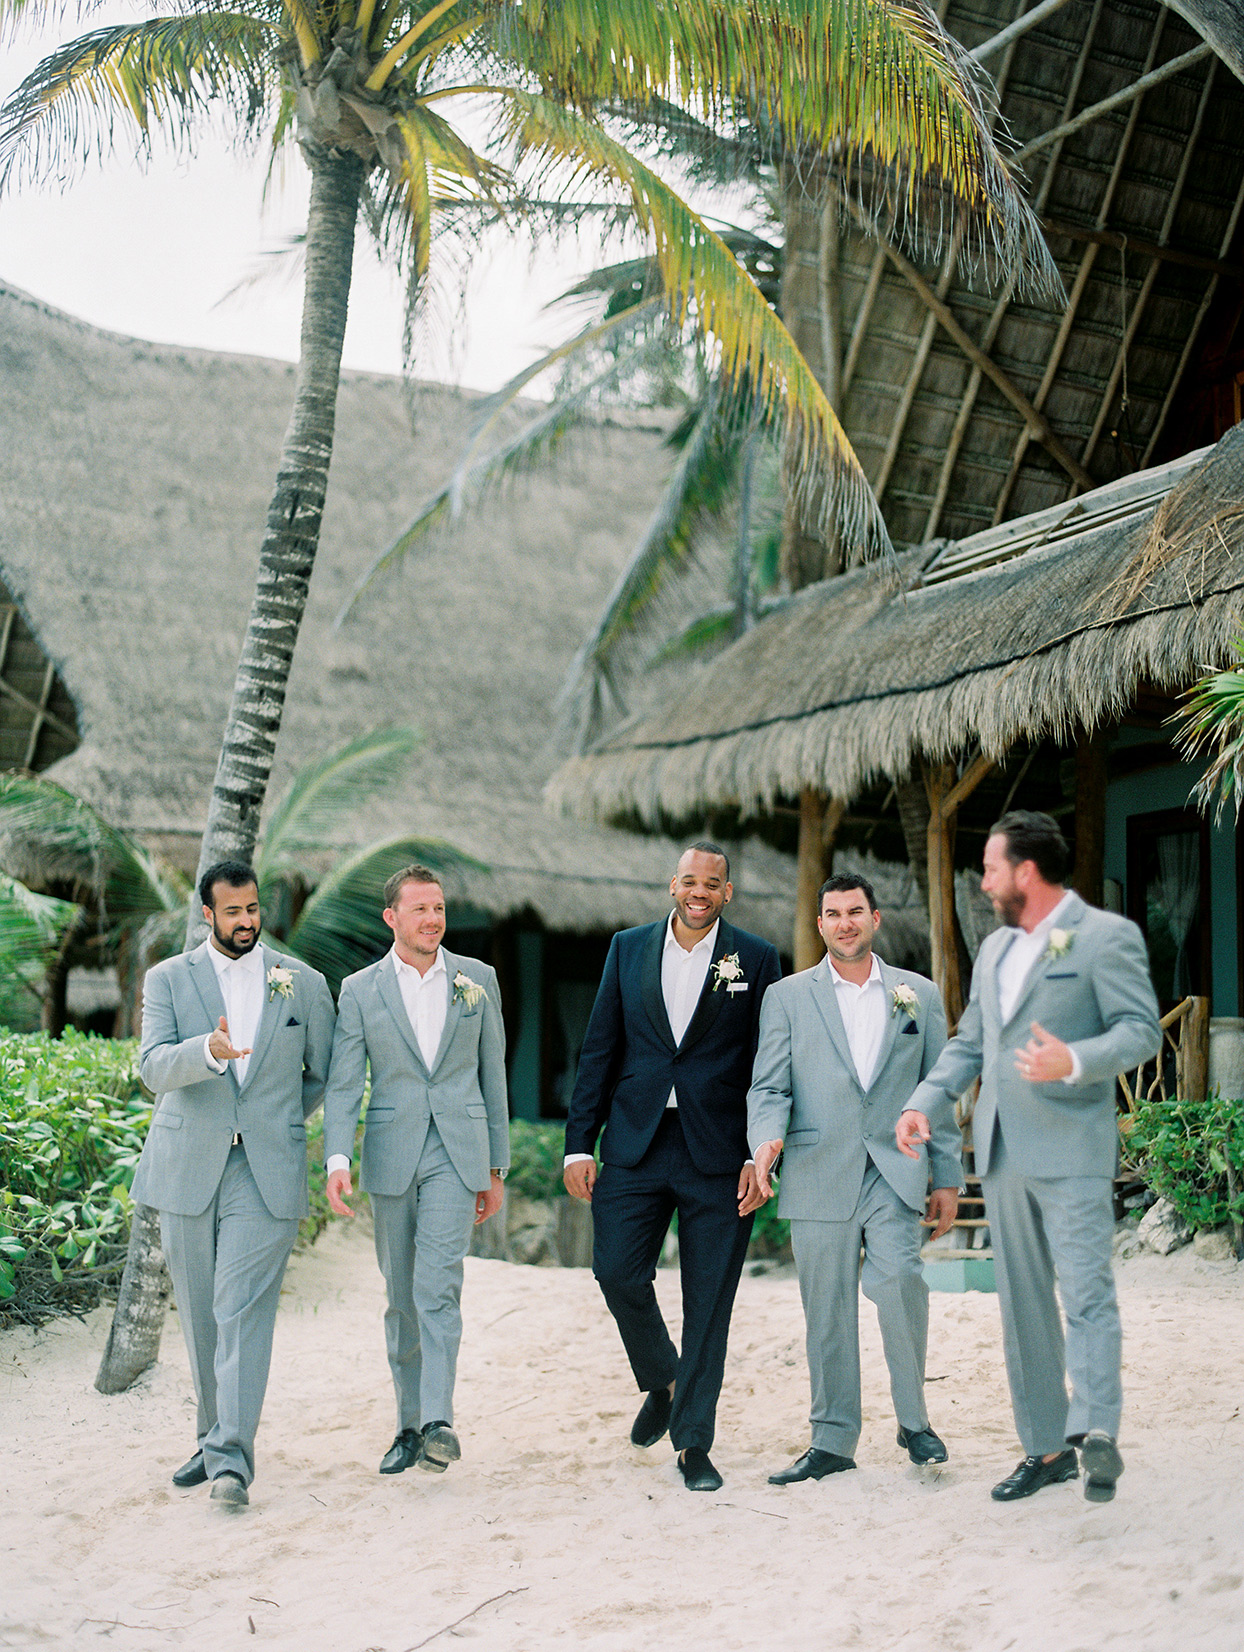 groom and groomsmen in light colored suits walking on beach